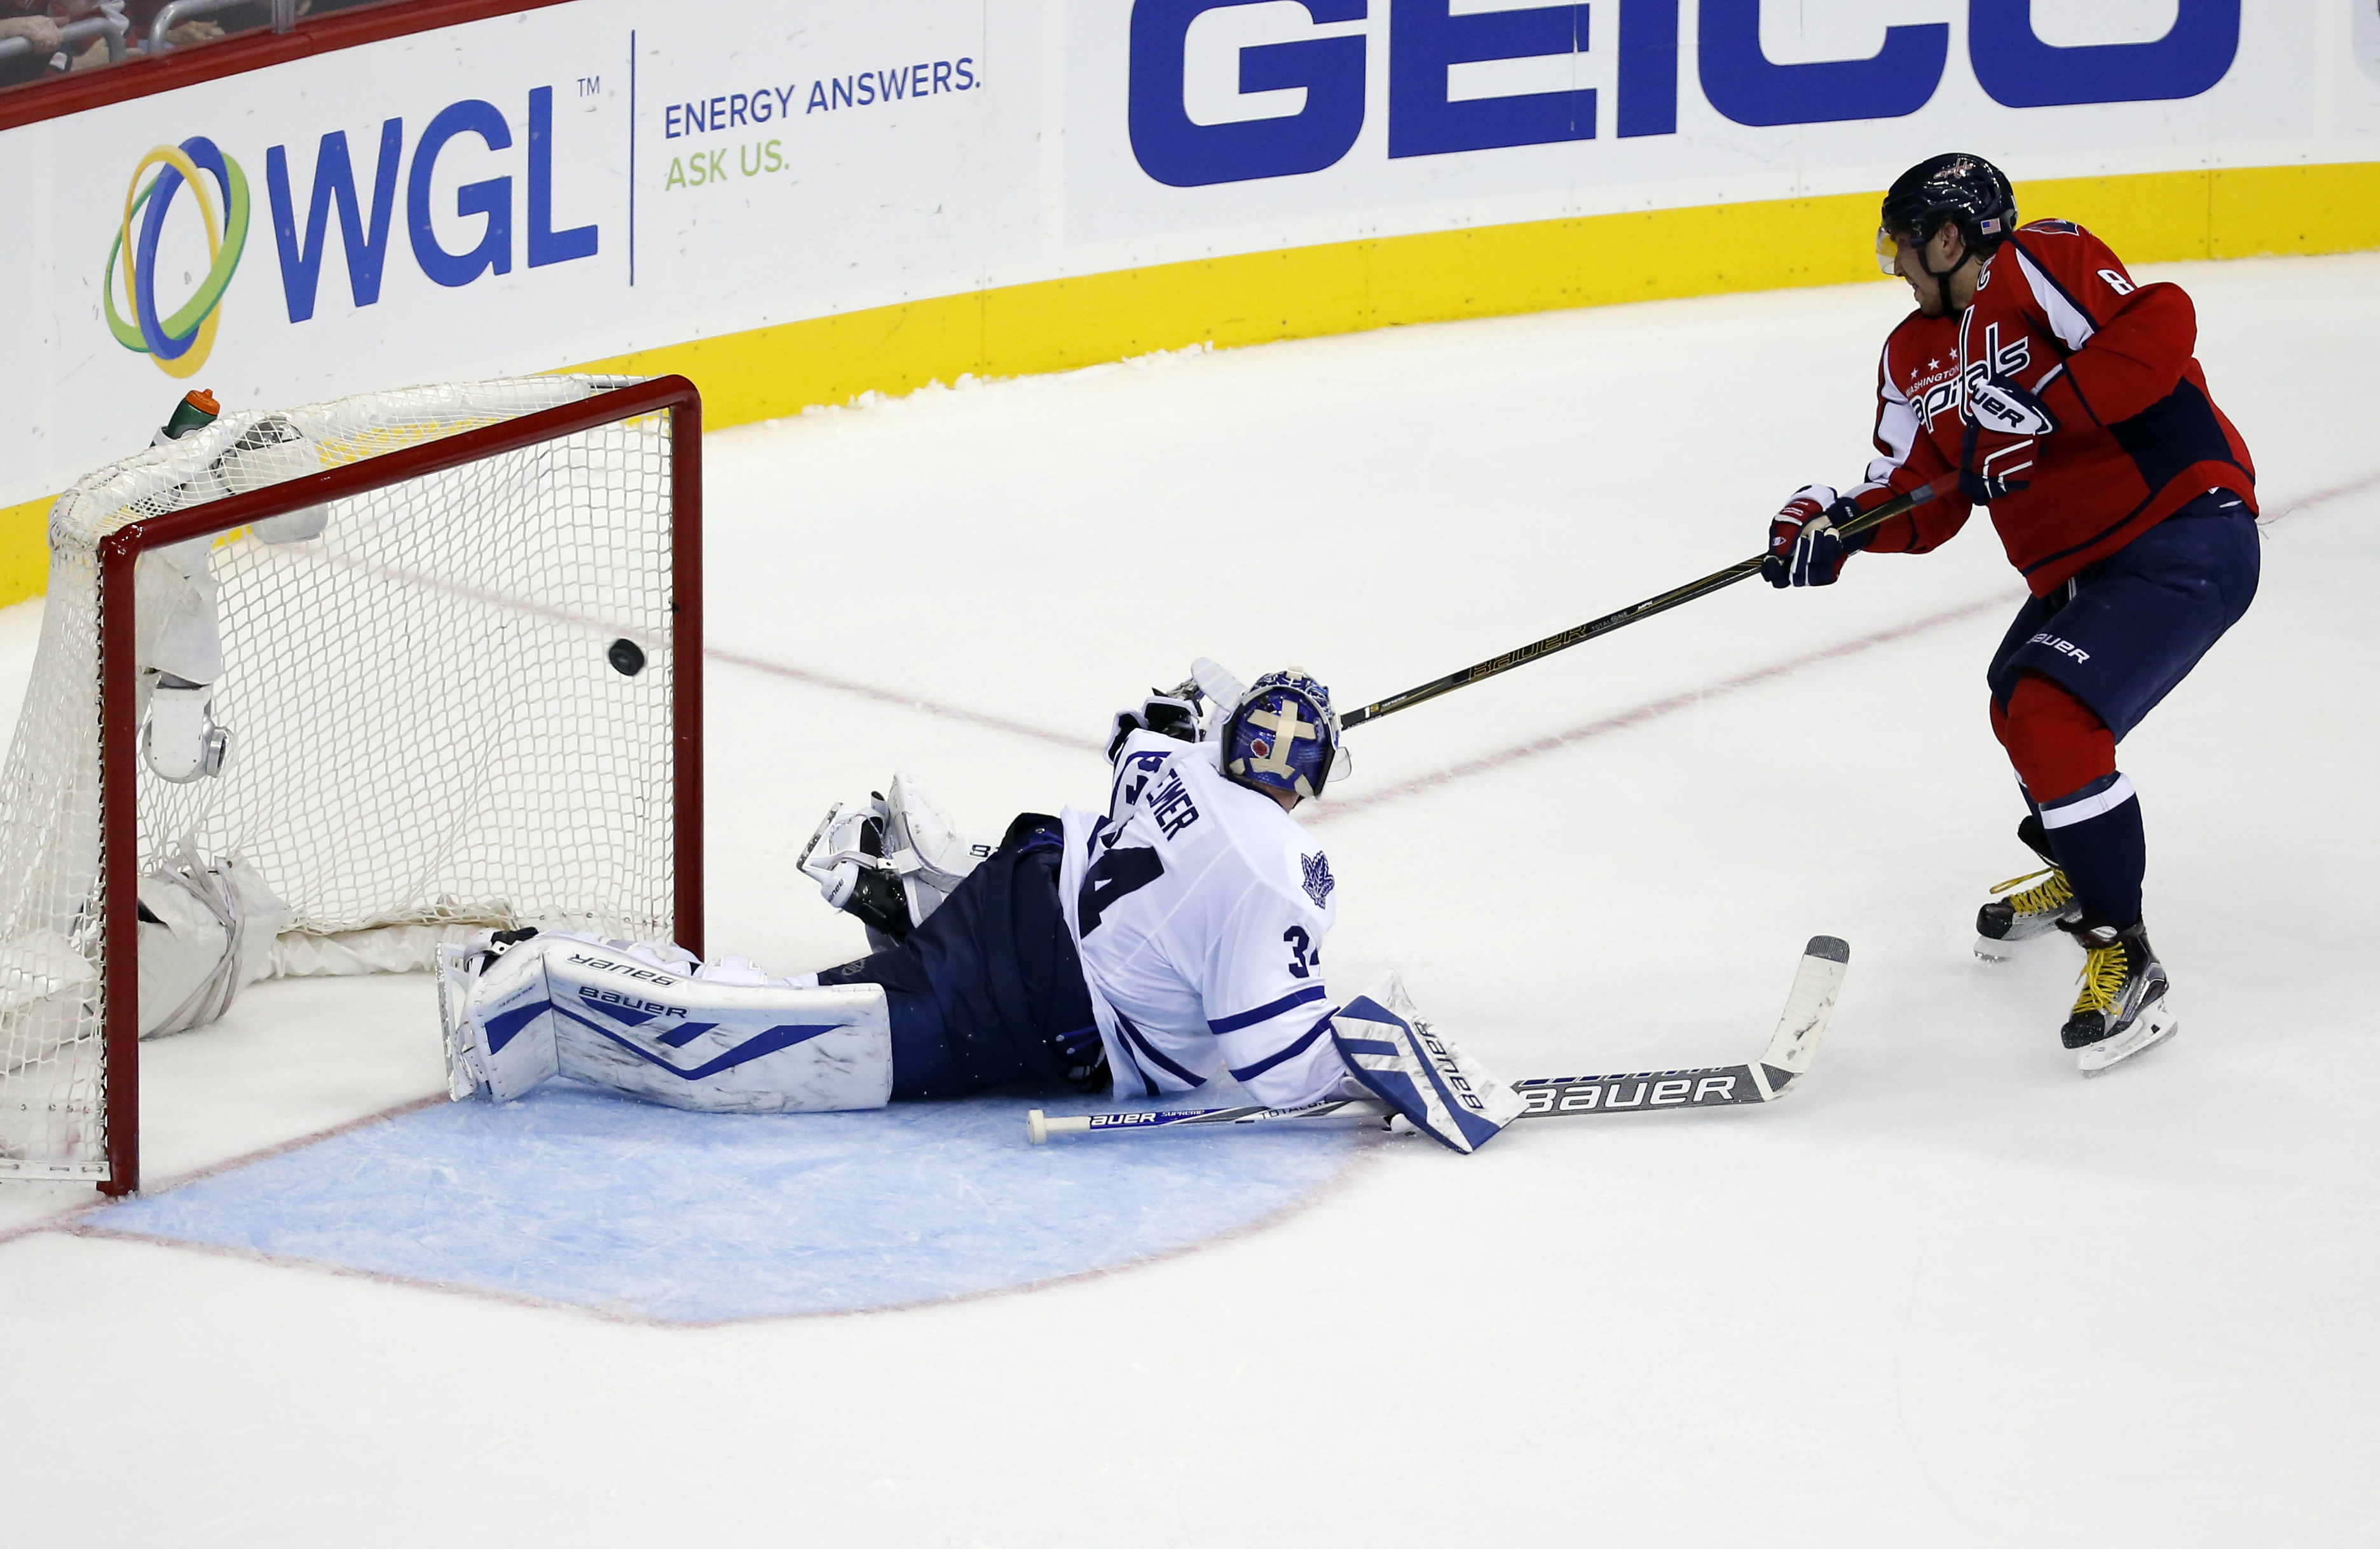 Washington Capitals left wing Alex Ovechkin (8), from Russia, scores the winning goal past Toronto Maple Leafs goalie James Reimer (34) in the shootout portion of an NHL hockey game, Saturday, Nov. 7, 2015, in Washington. The Capitals won 3-2 in overtime.